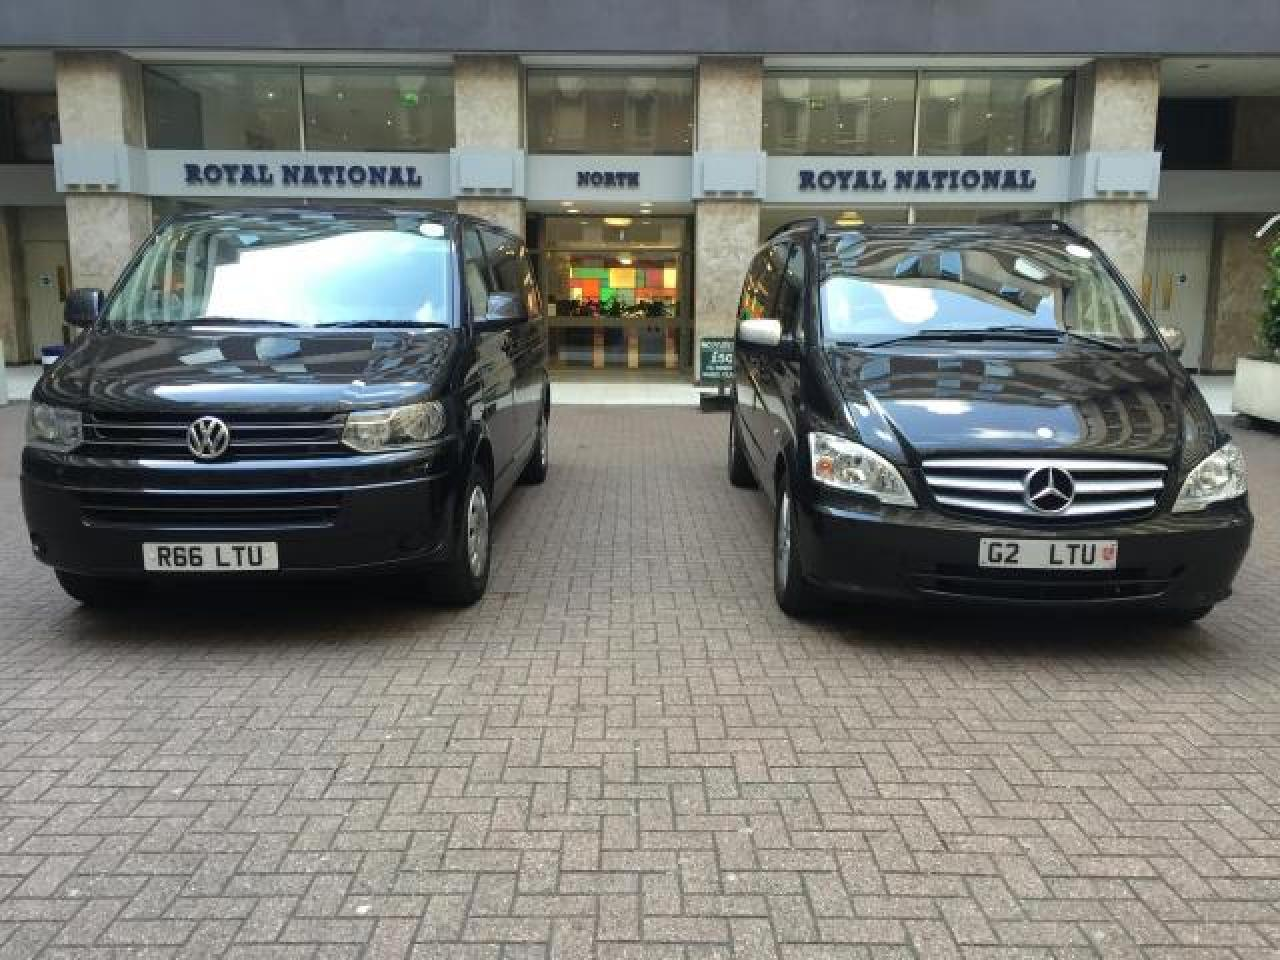 London airport  taxi 24/7 - 2/3